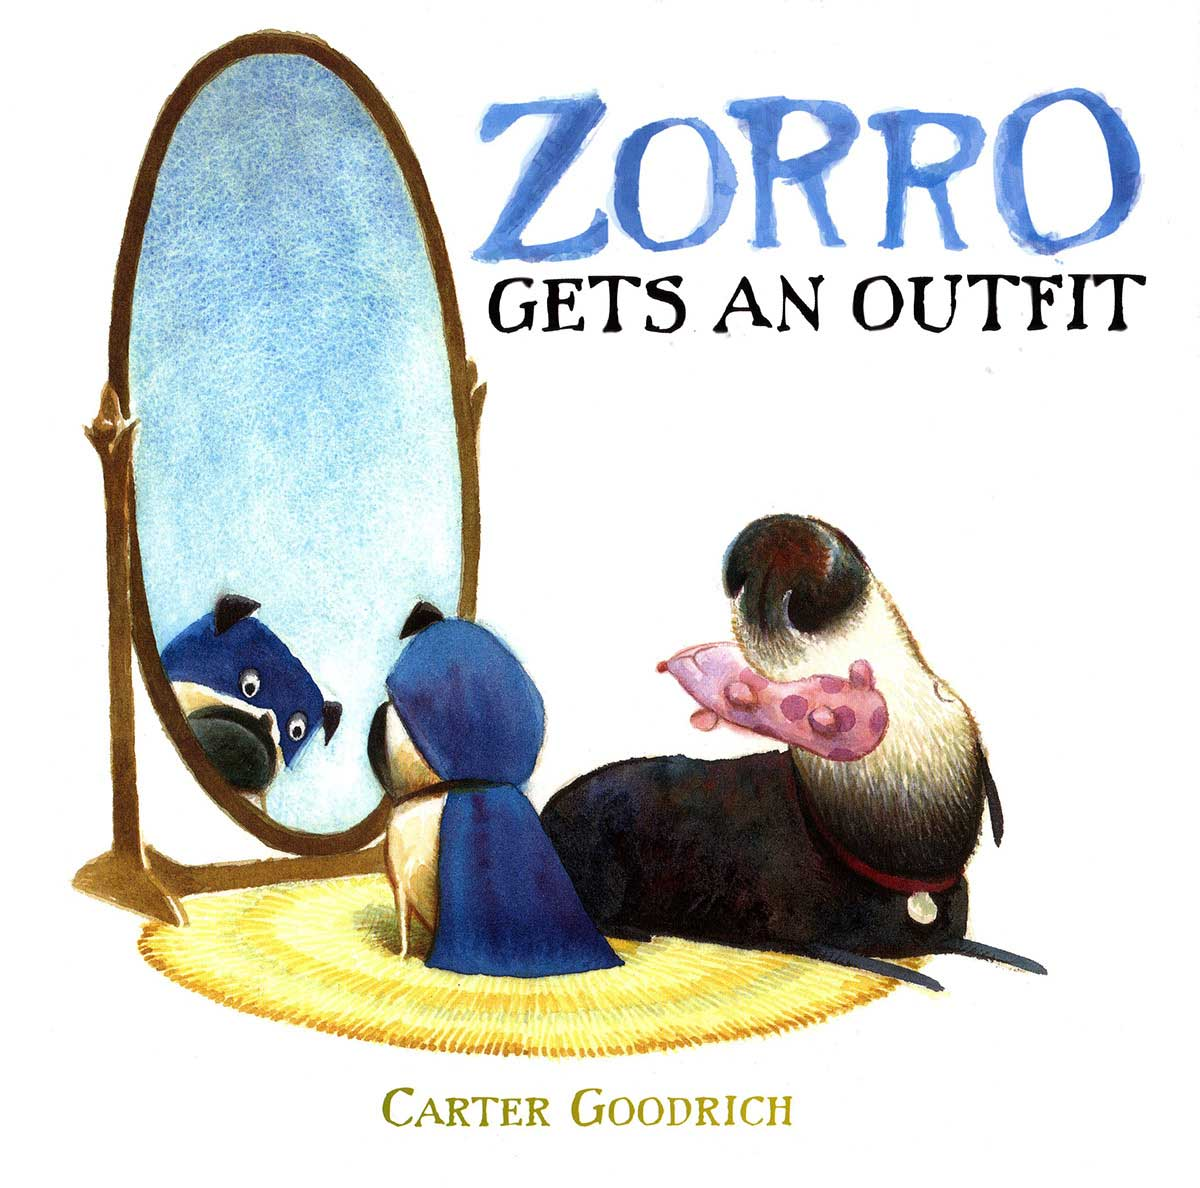 Zorro-Gets-an-Outfit-1